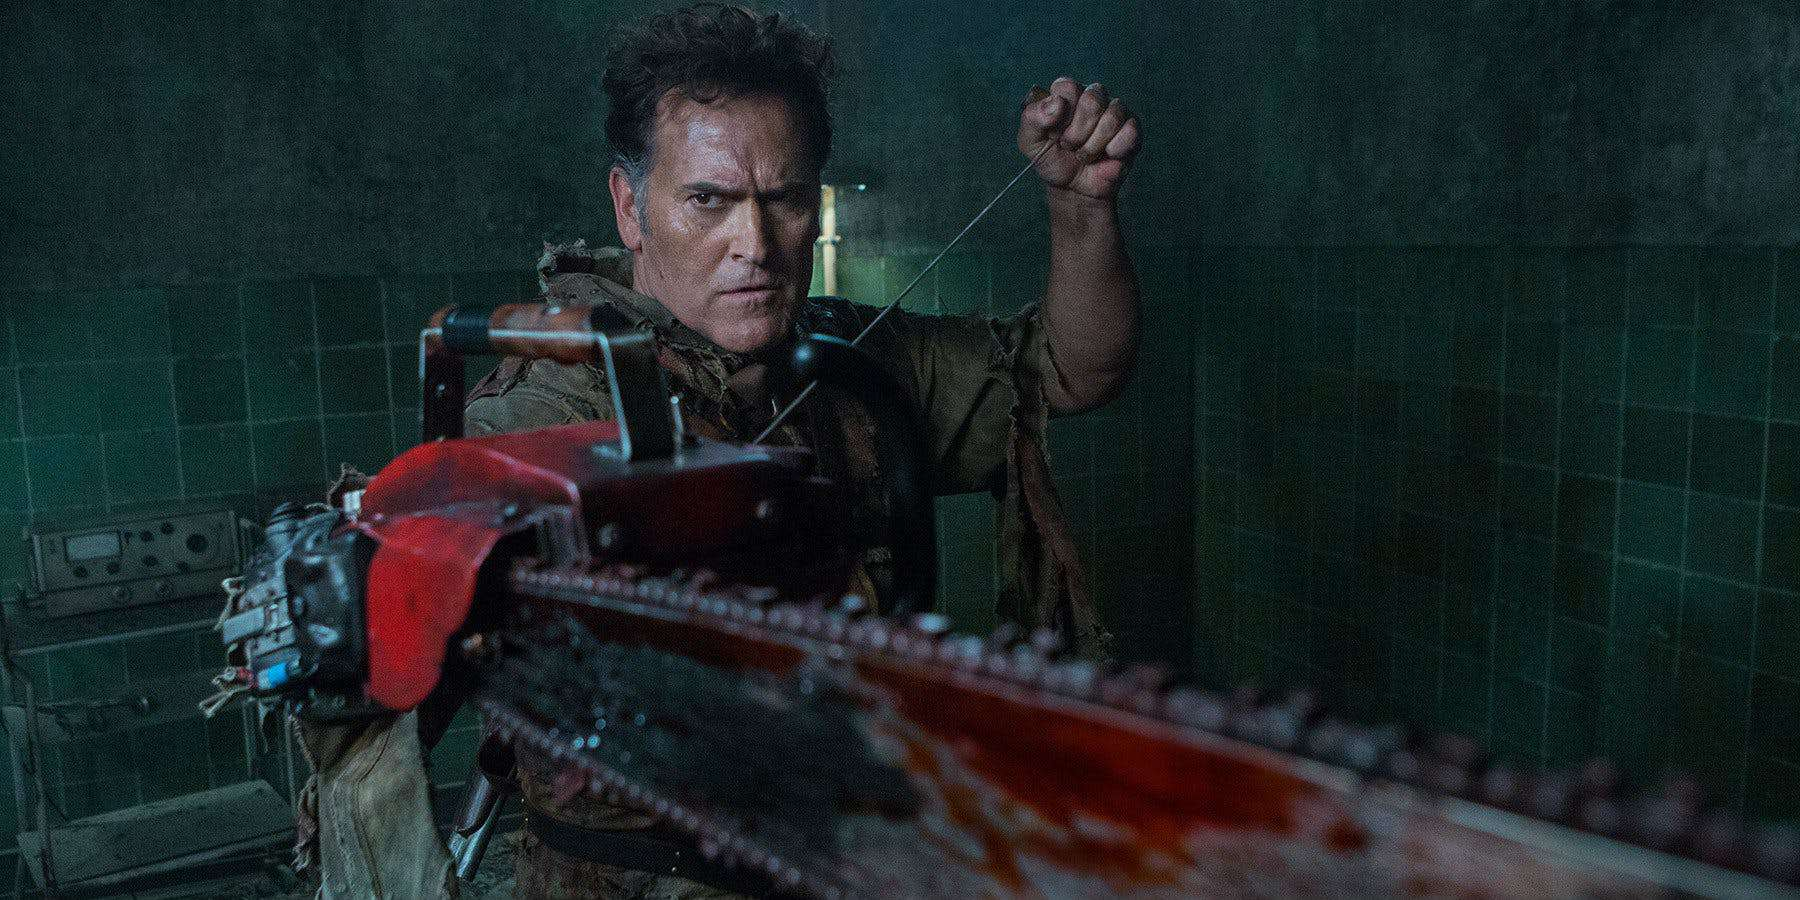 Horror TV News:  Ash vs. Evil Dead Season 3 kicks off this week!